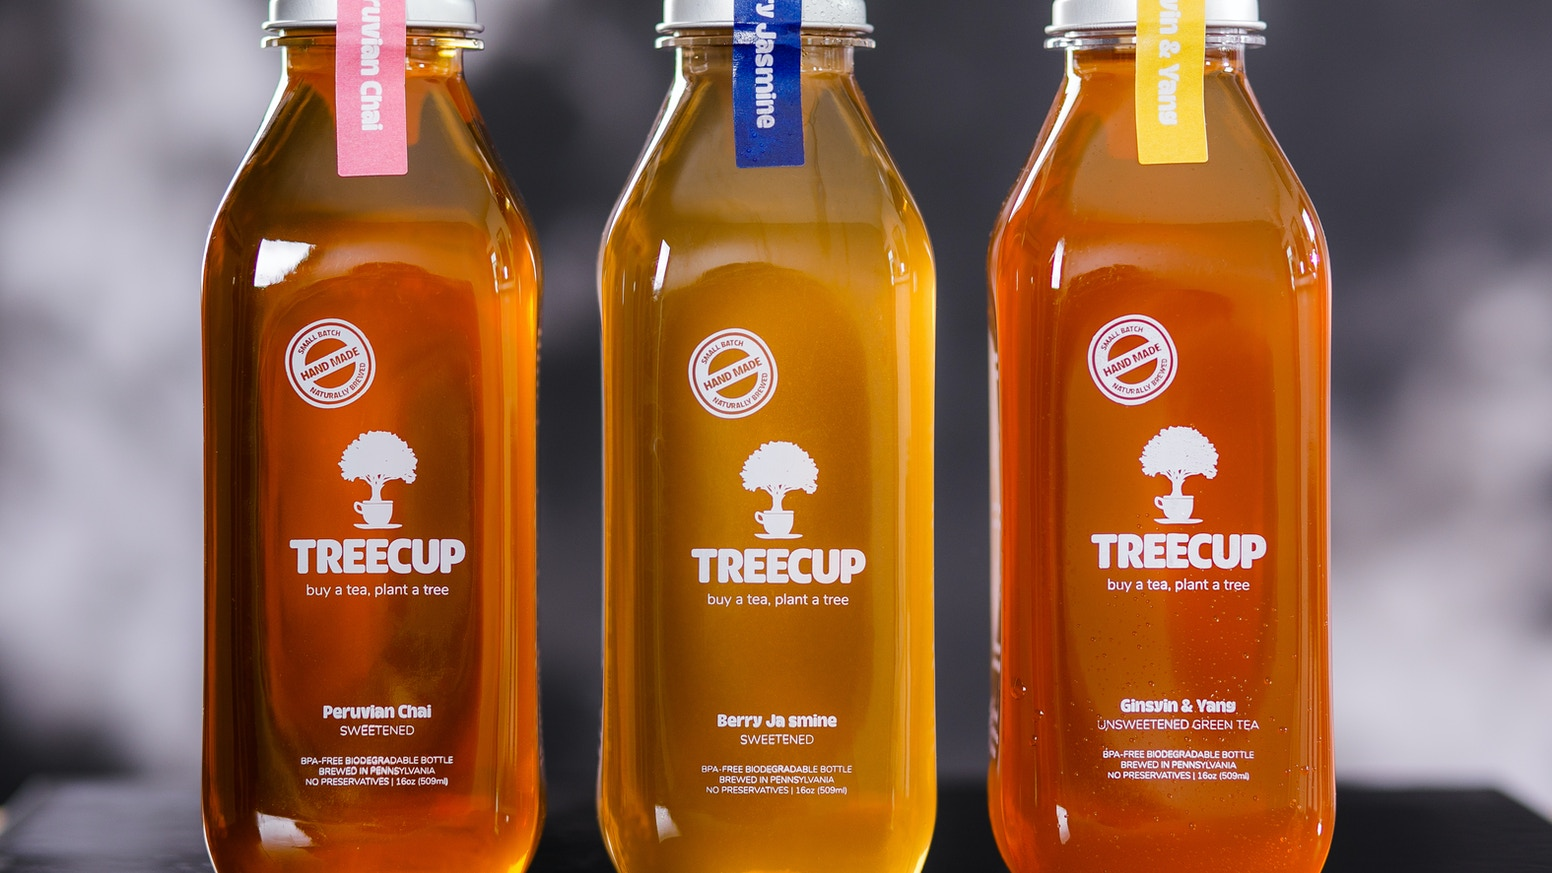 Opposing the wasteful ways of the bottled beverage industry. Combating deforestation in Haiti through organic tea.